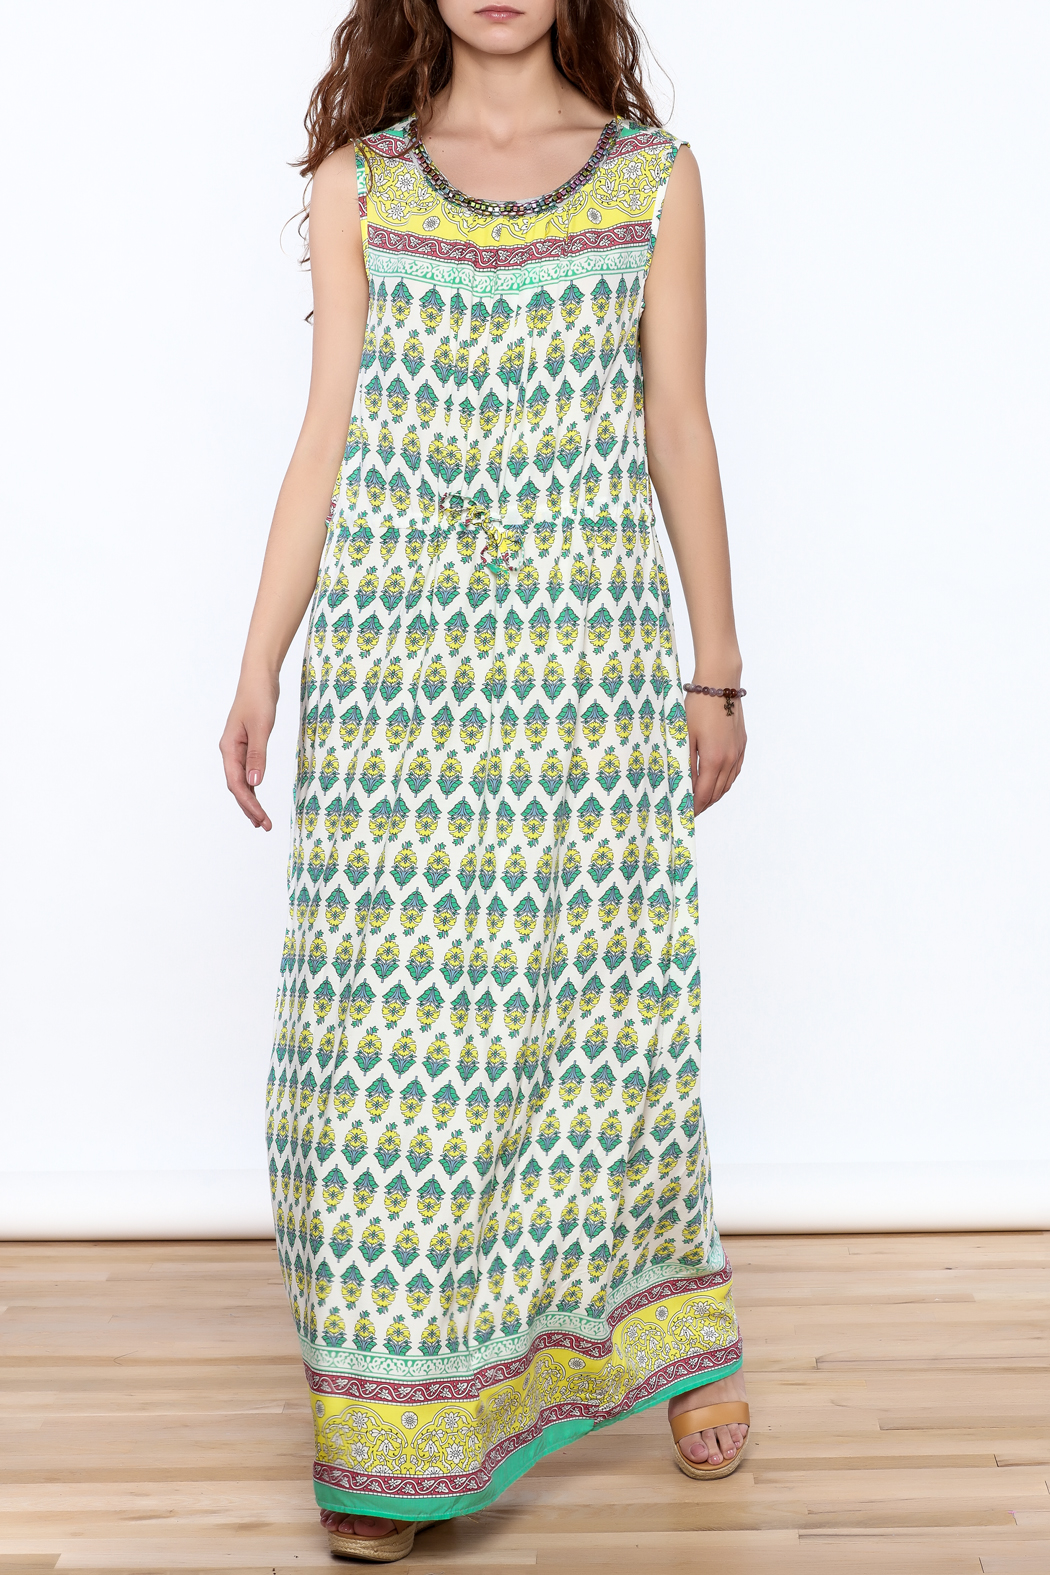 Joy & Co Printed Maxi Dress - Main Image